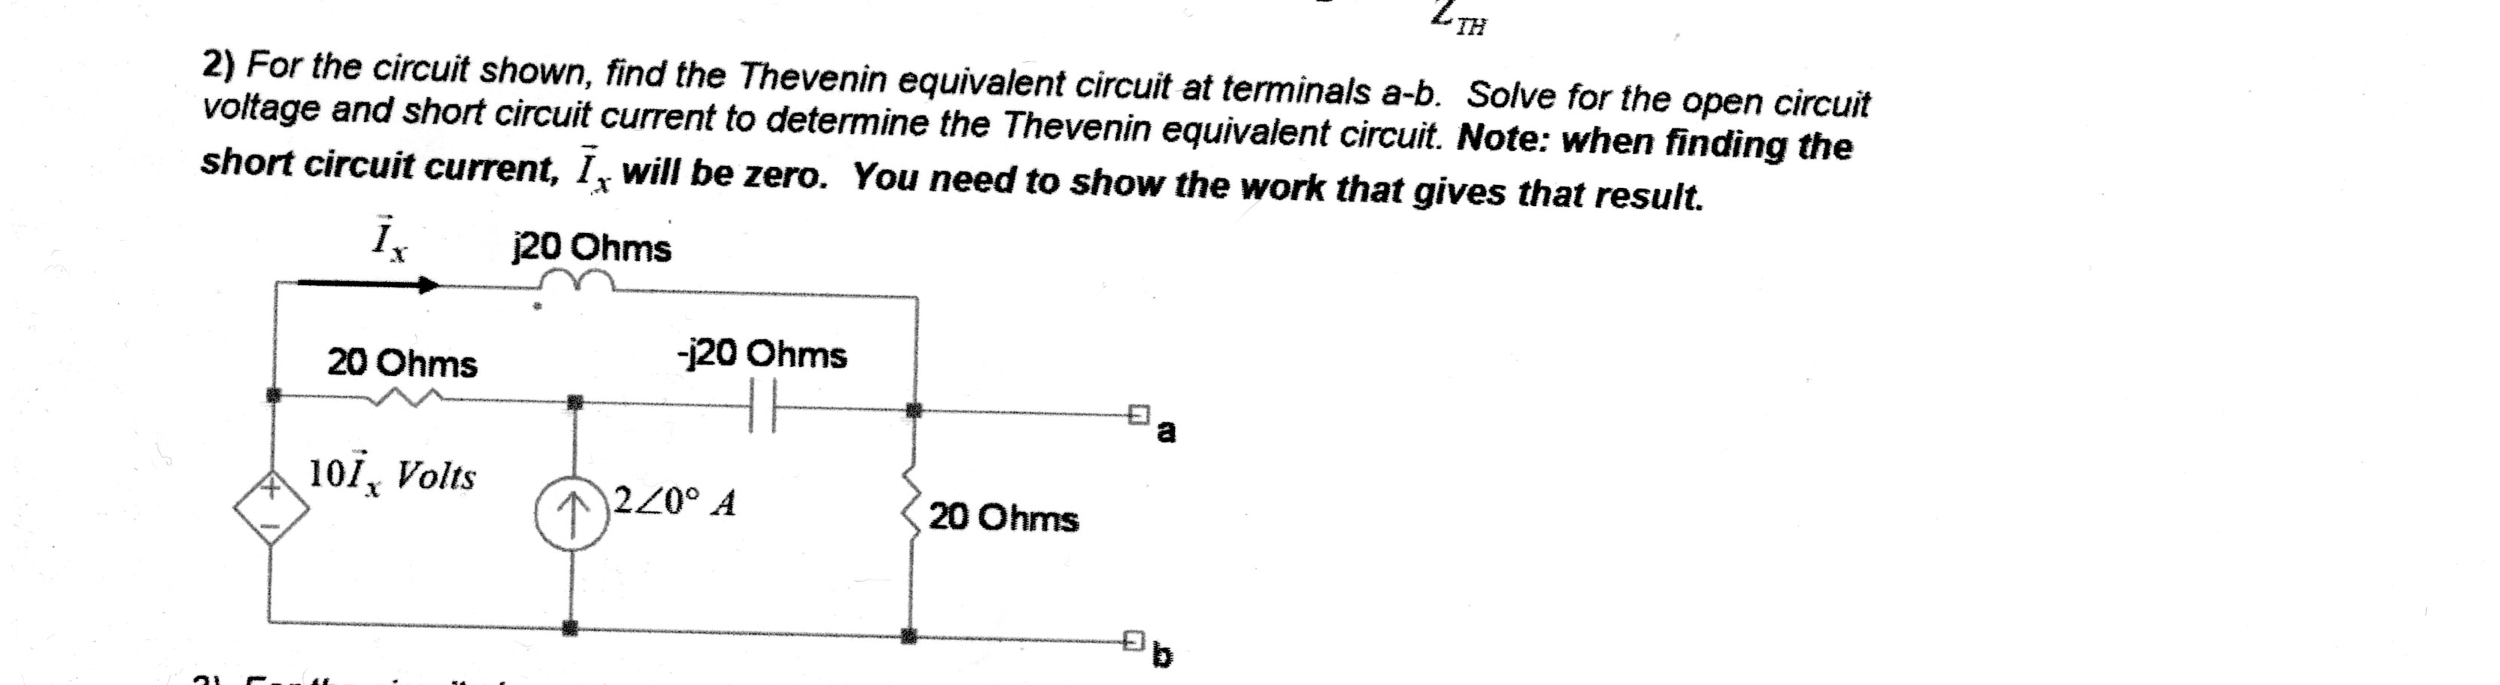 For the circuit shown, find the Thevenin equivalen